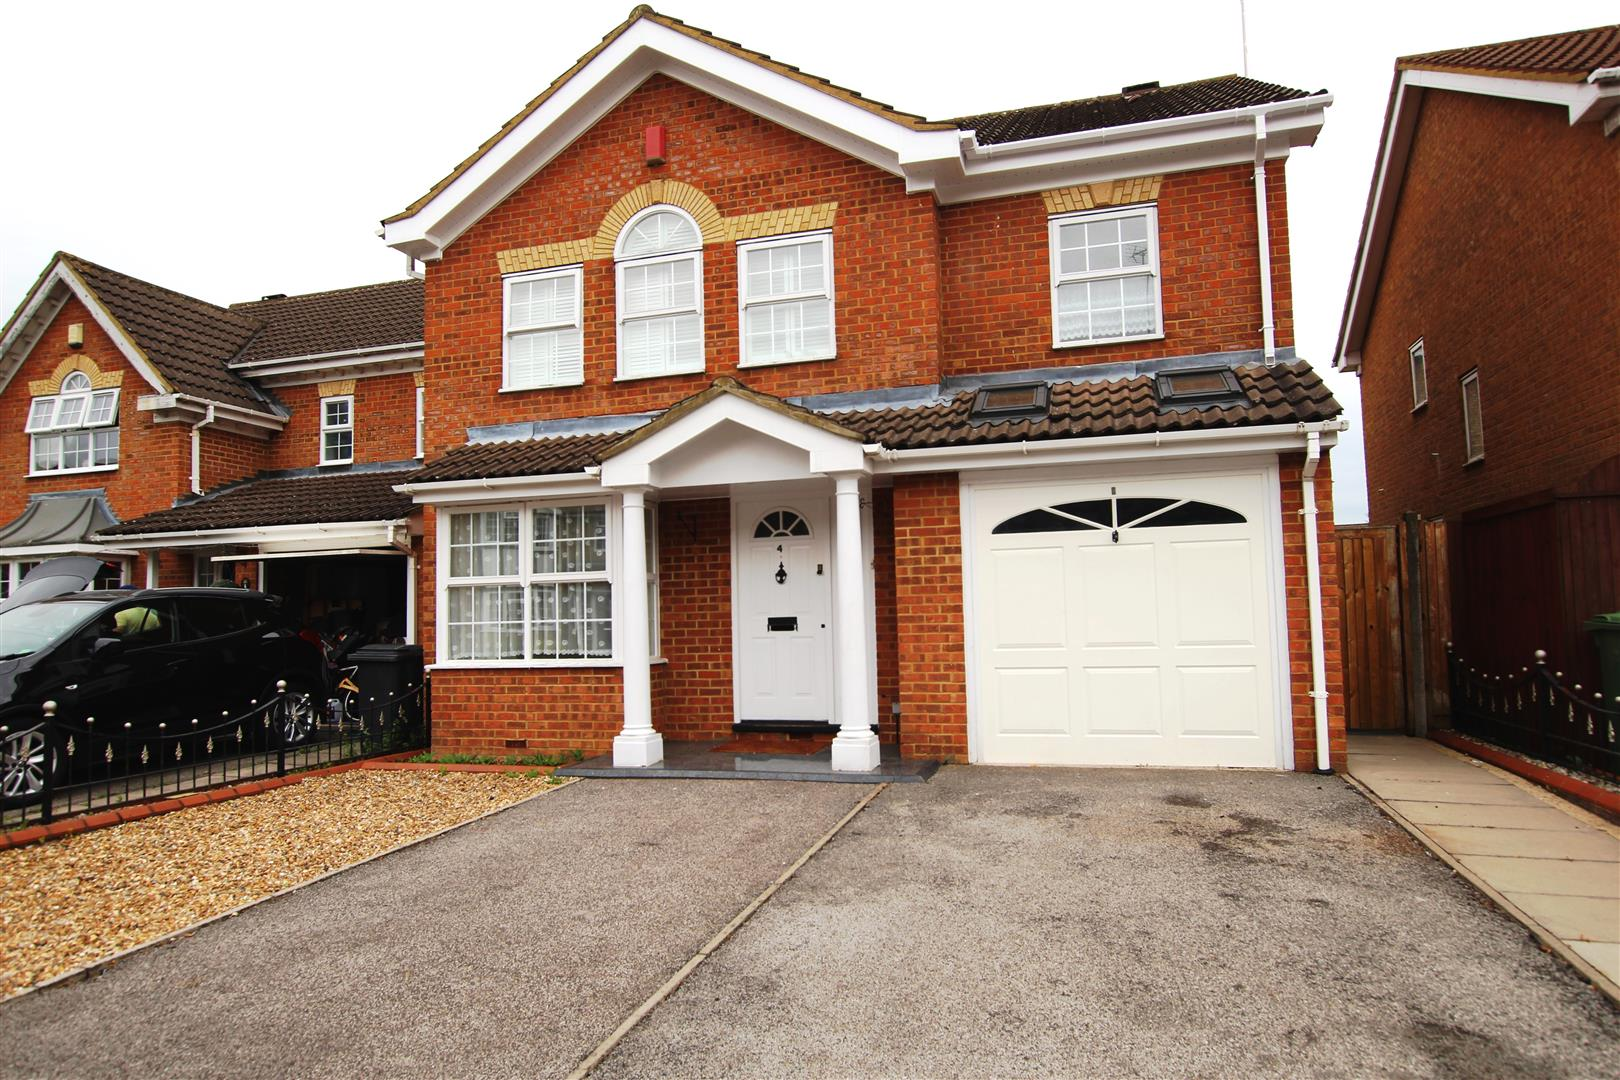 4 Bedrooms Detached House for sale in Printers Way, Dunstable